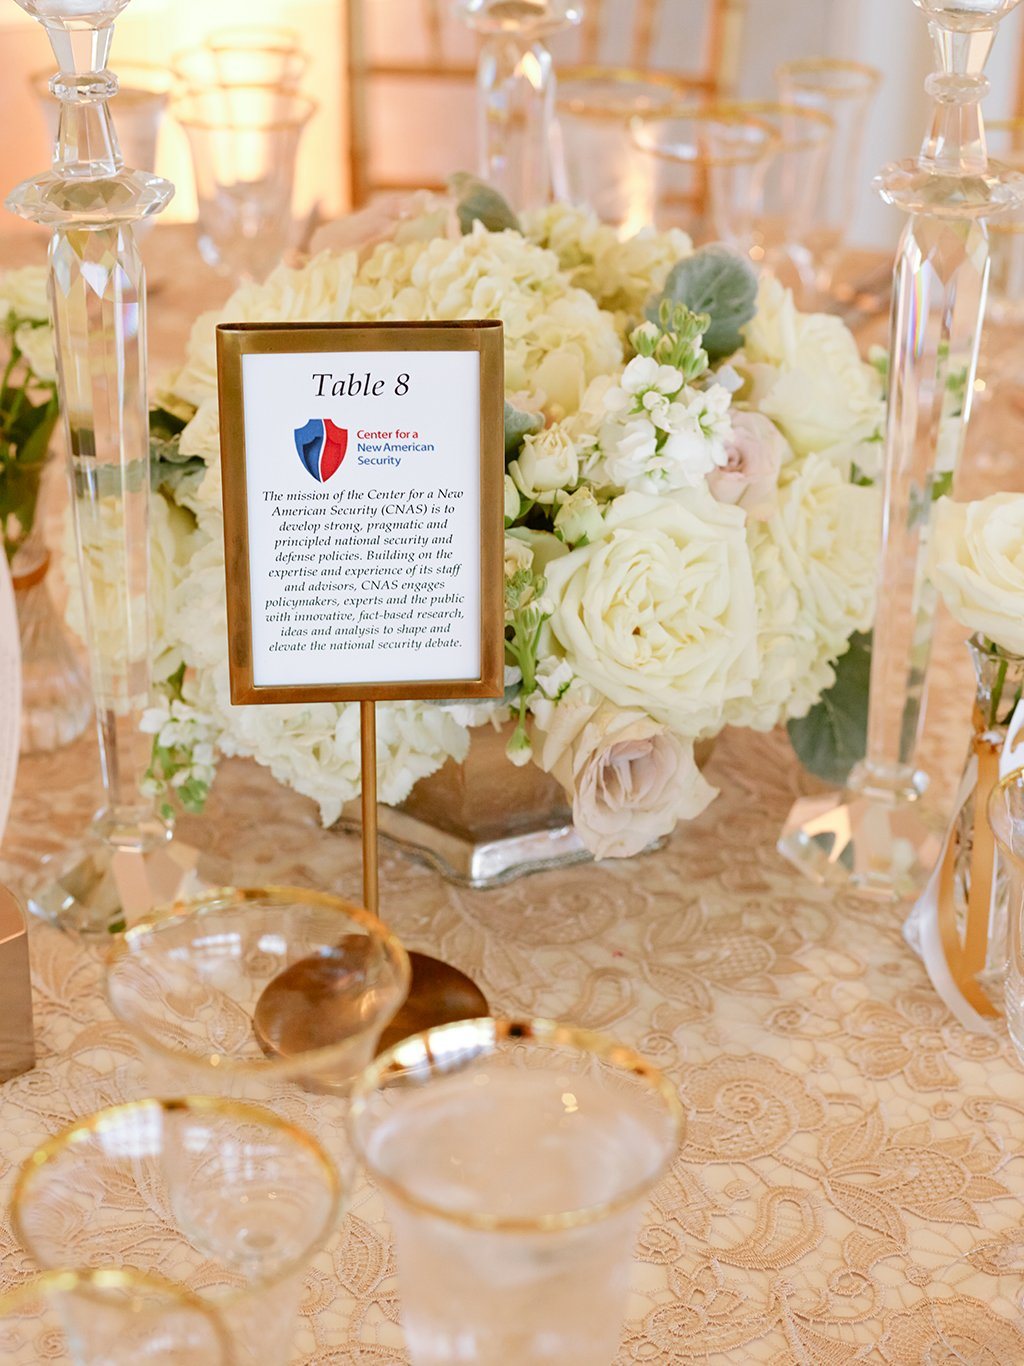 50 Clever Wedding Ideas to Make Your Big Day Stand Out